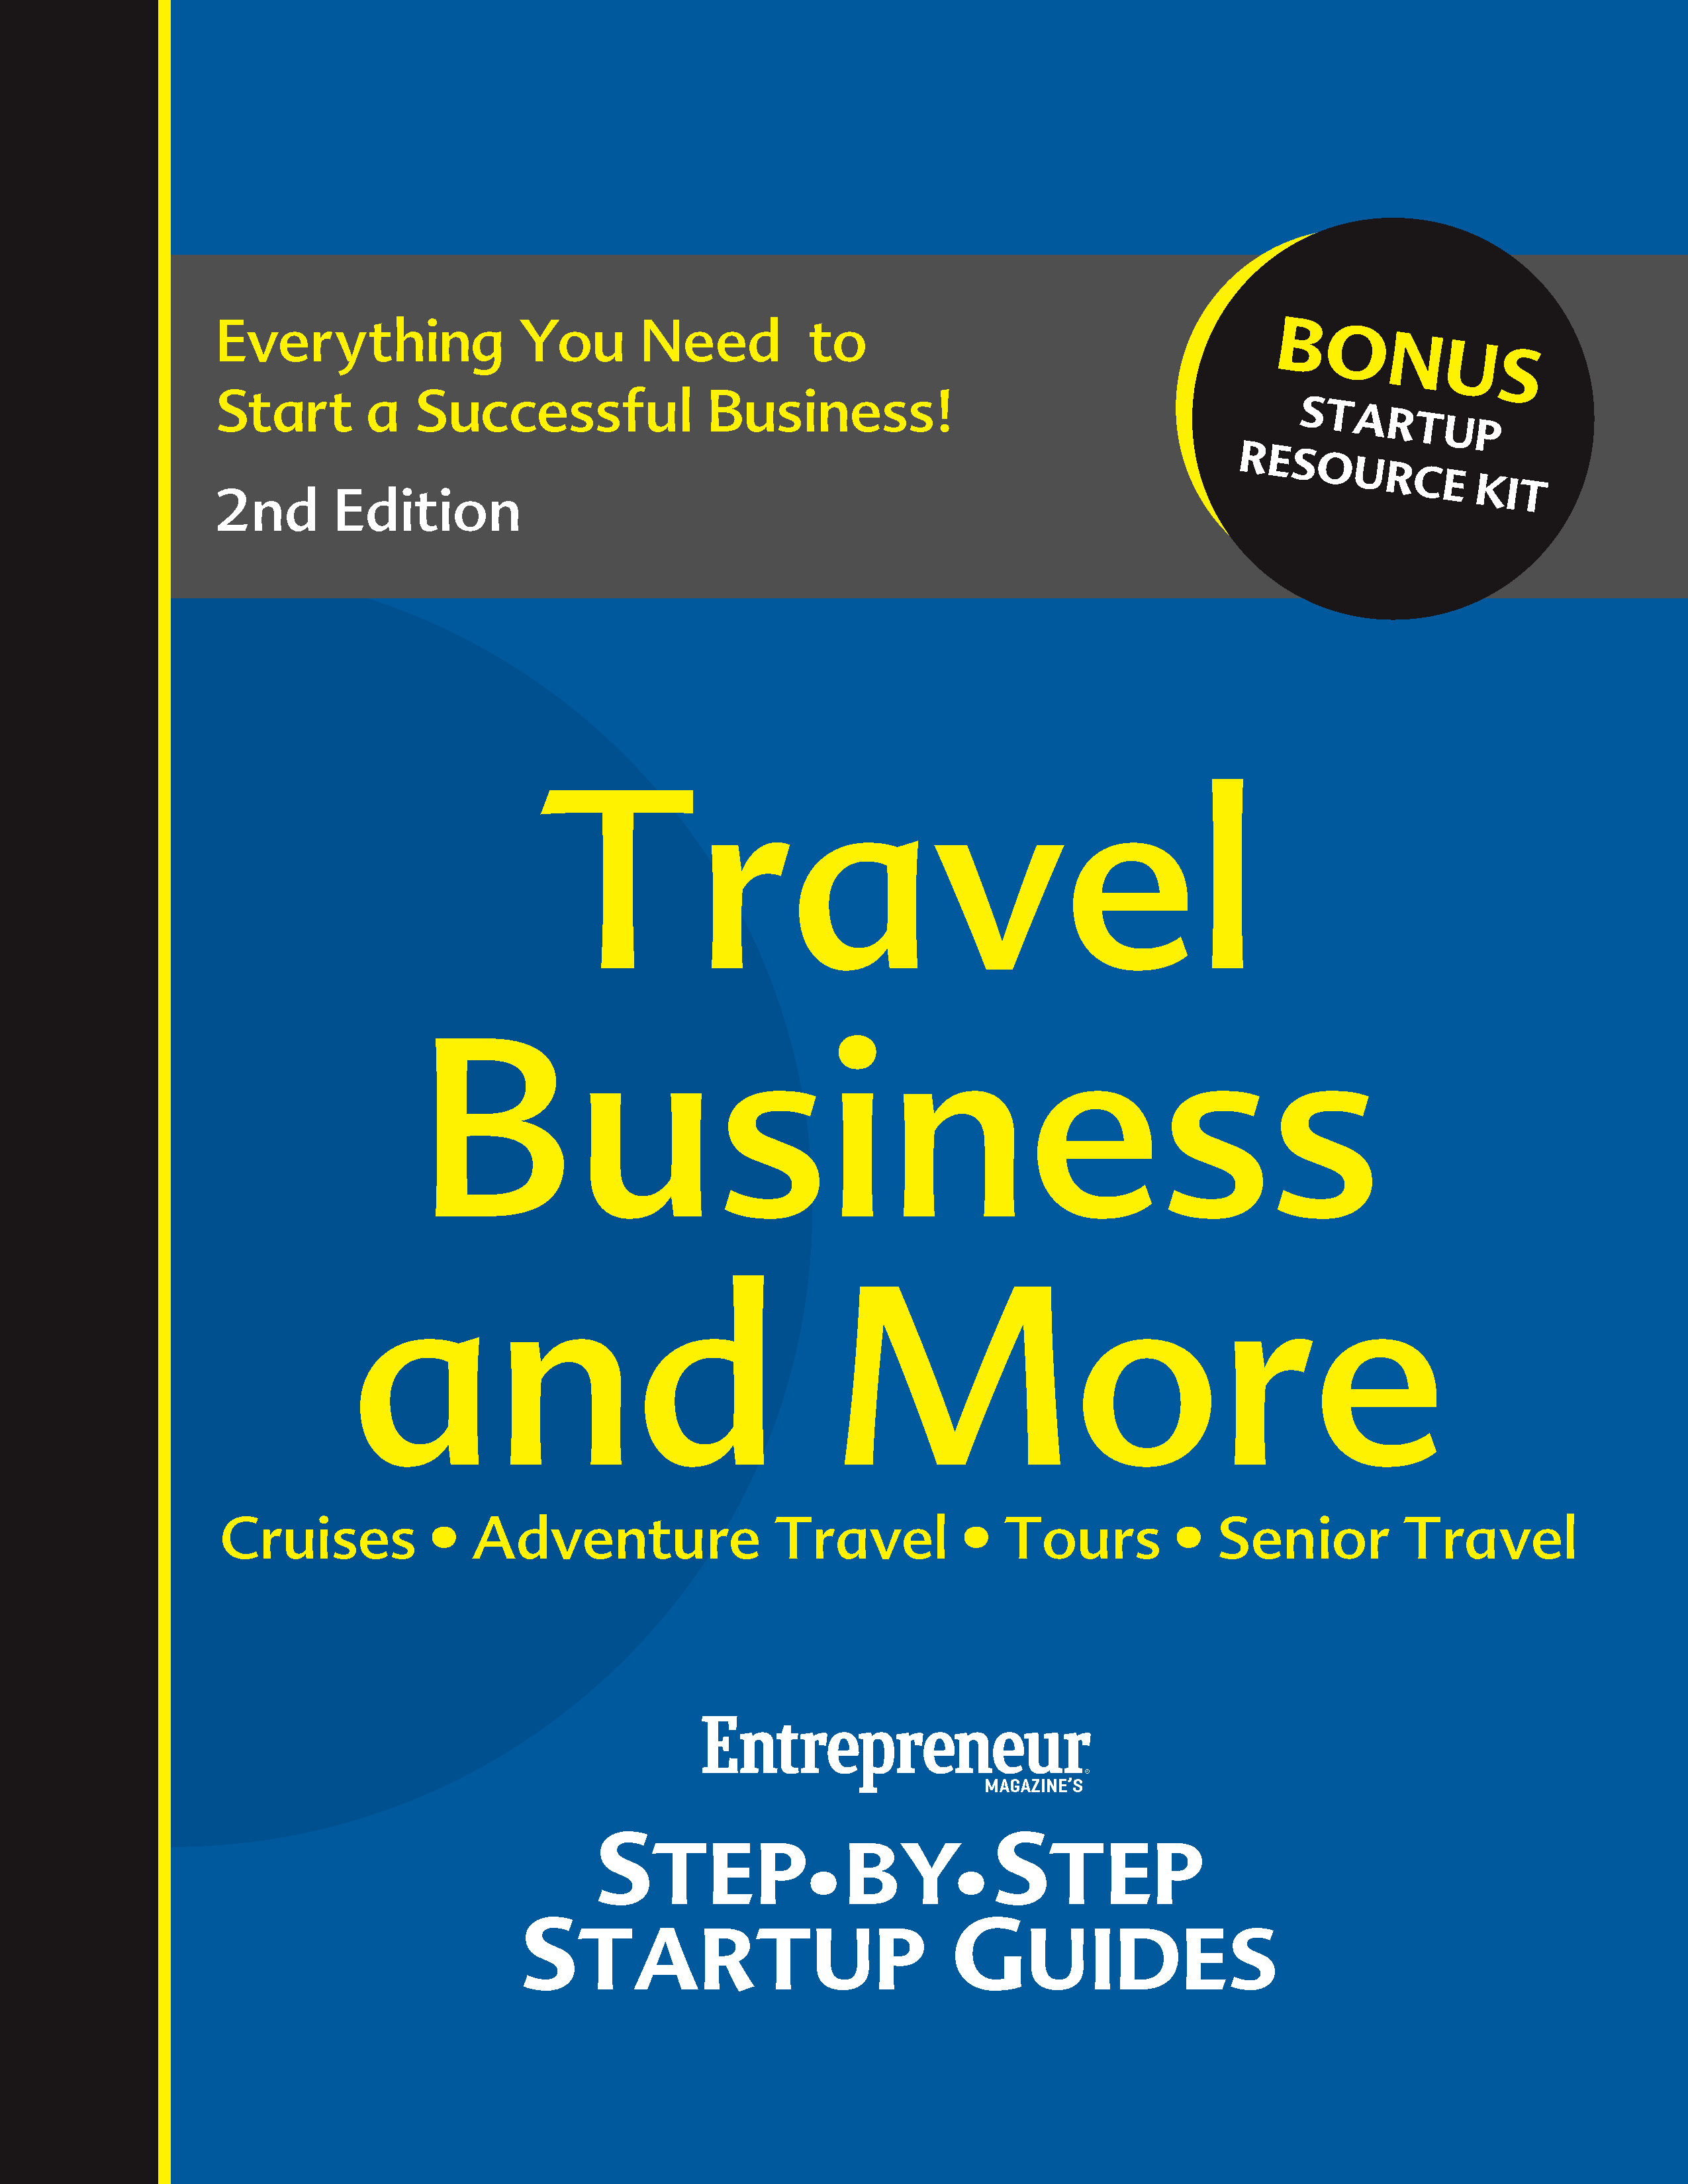 Travel Business and More